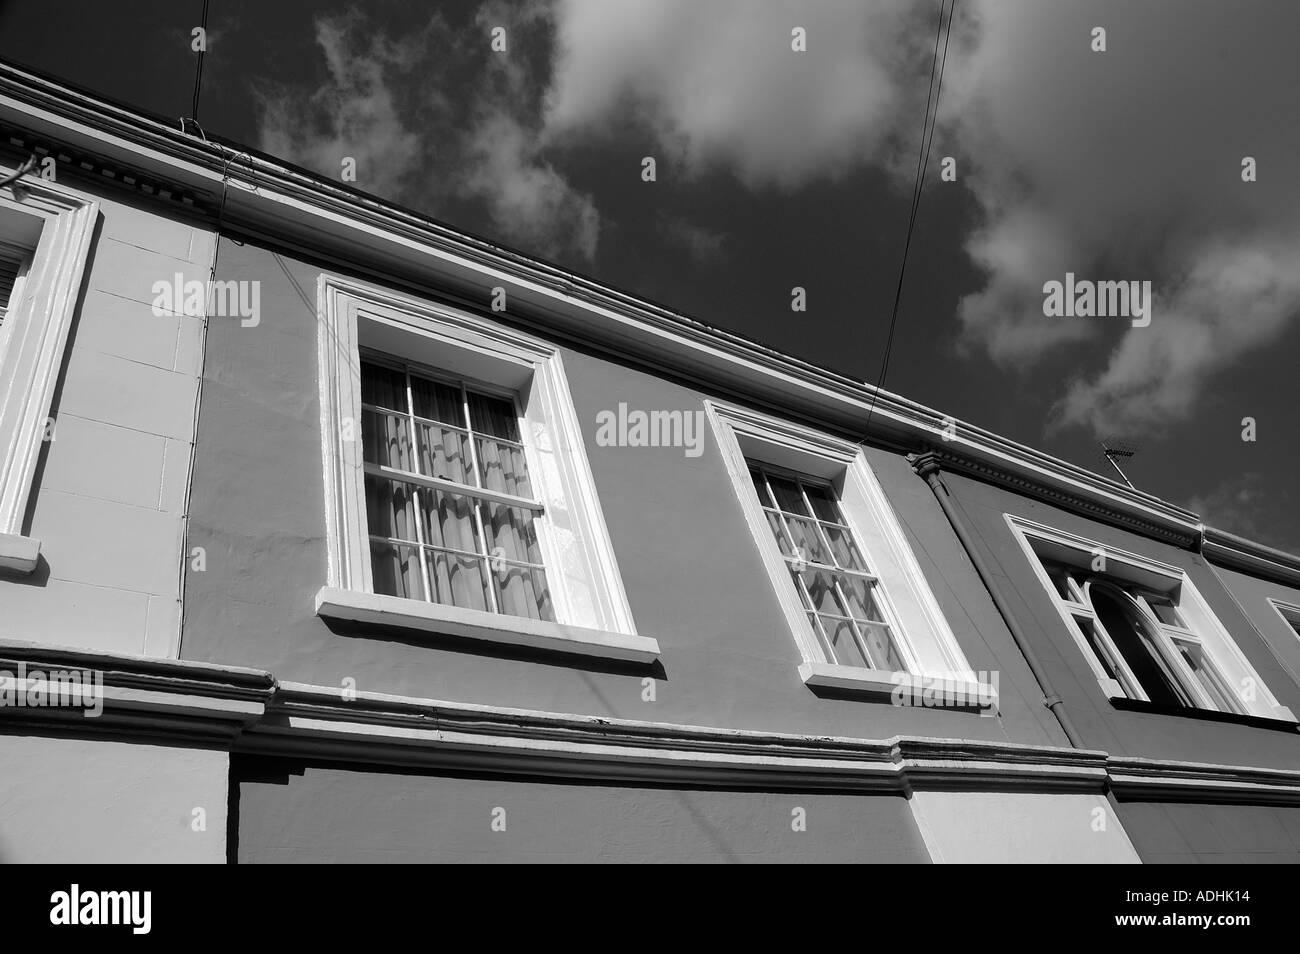 A row of Georgioan English homes in Notting Hill London - Stock Image